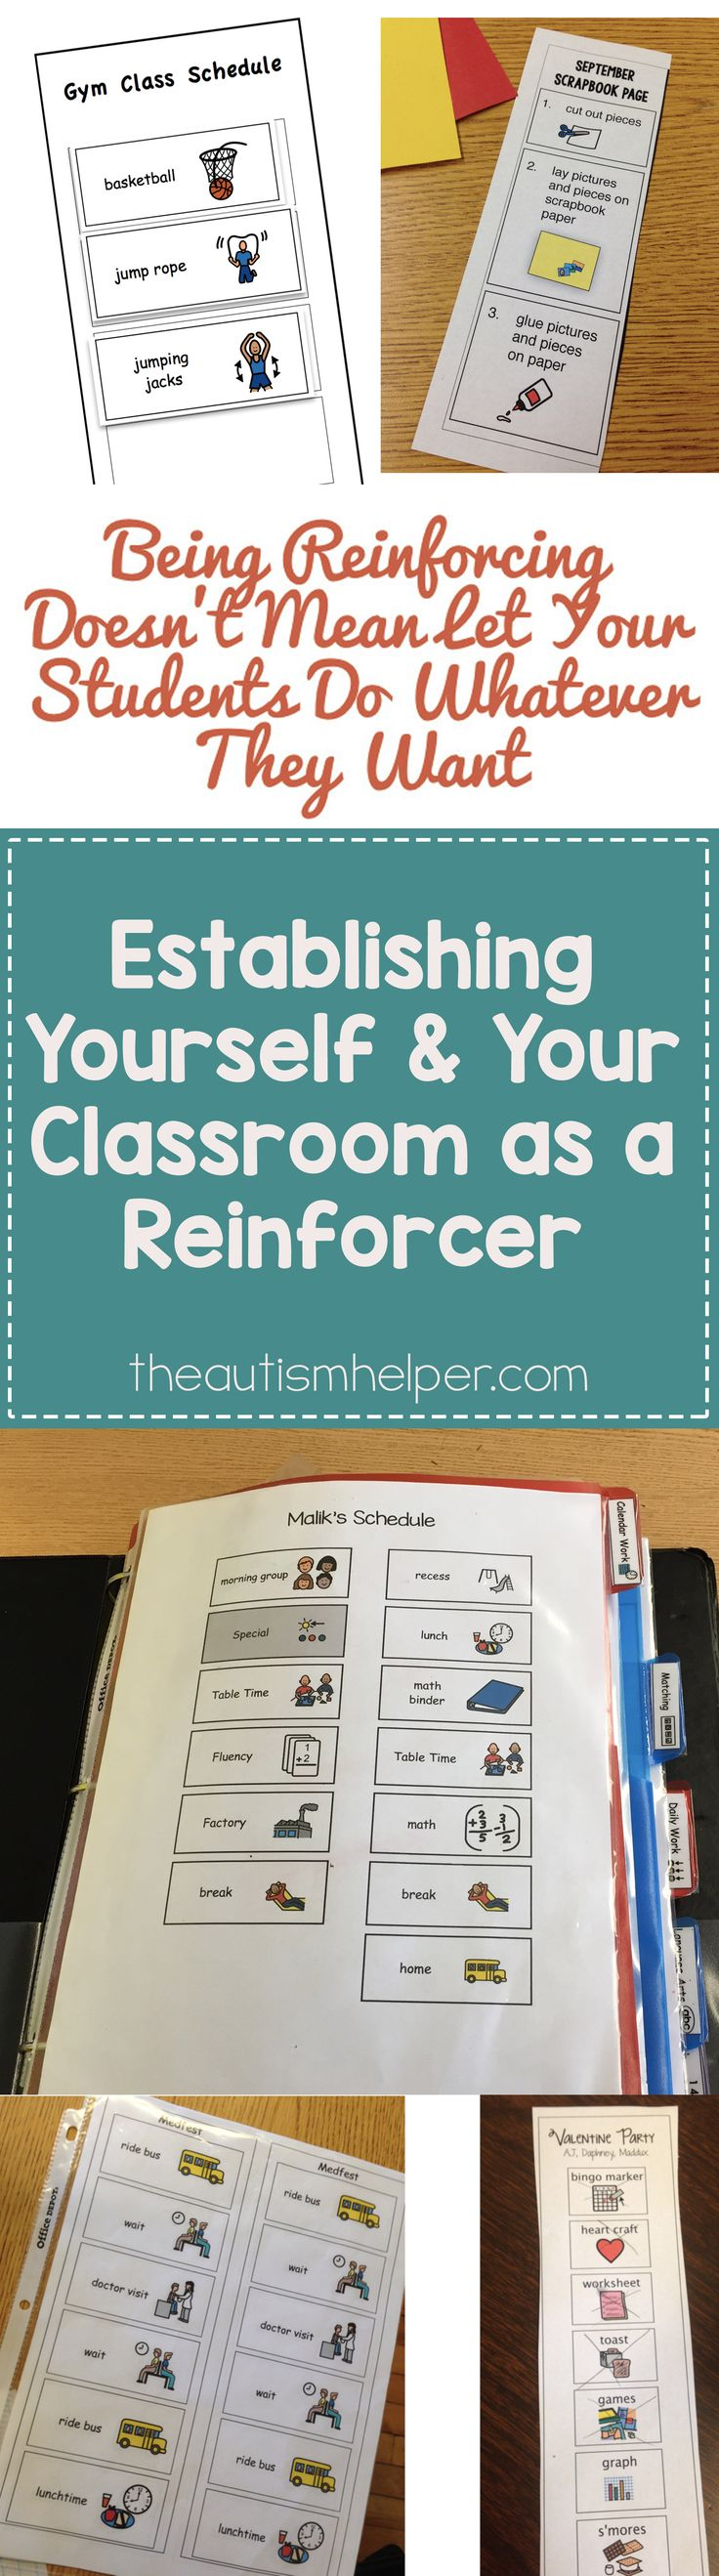 It's time to emphasize your & your classroom's role as a reinforcer. Keep on rockin' with our tips from the blog!! :D From theautismhelper.com #theautismhelper